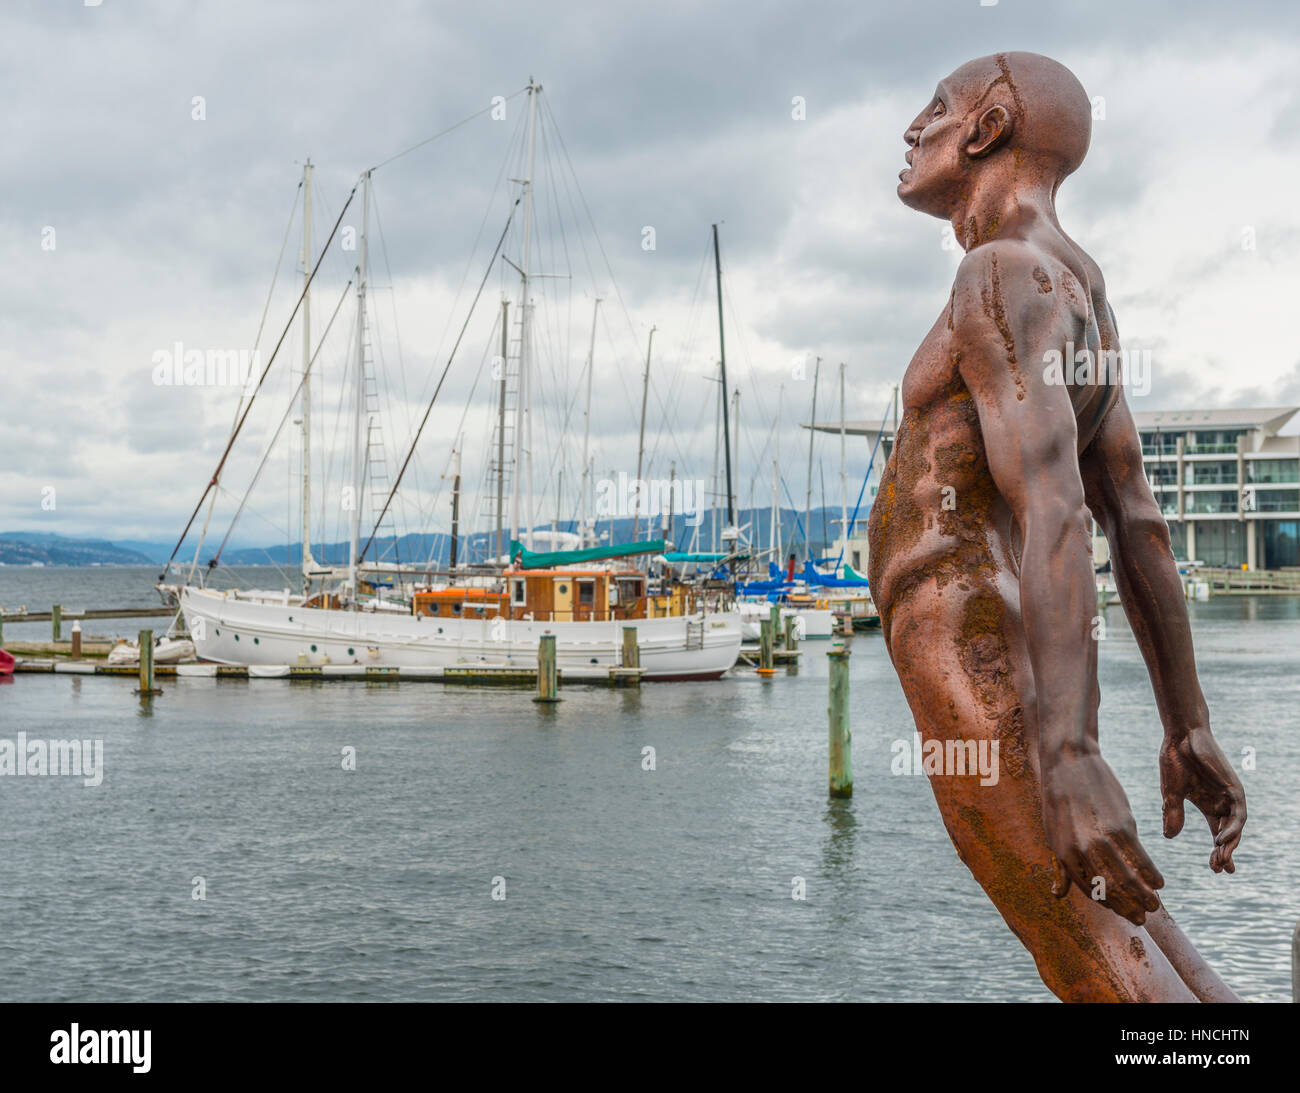 Statue, Solace of the Wind, Wellington Harbour, North Island, New Zealand - Stock Image